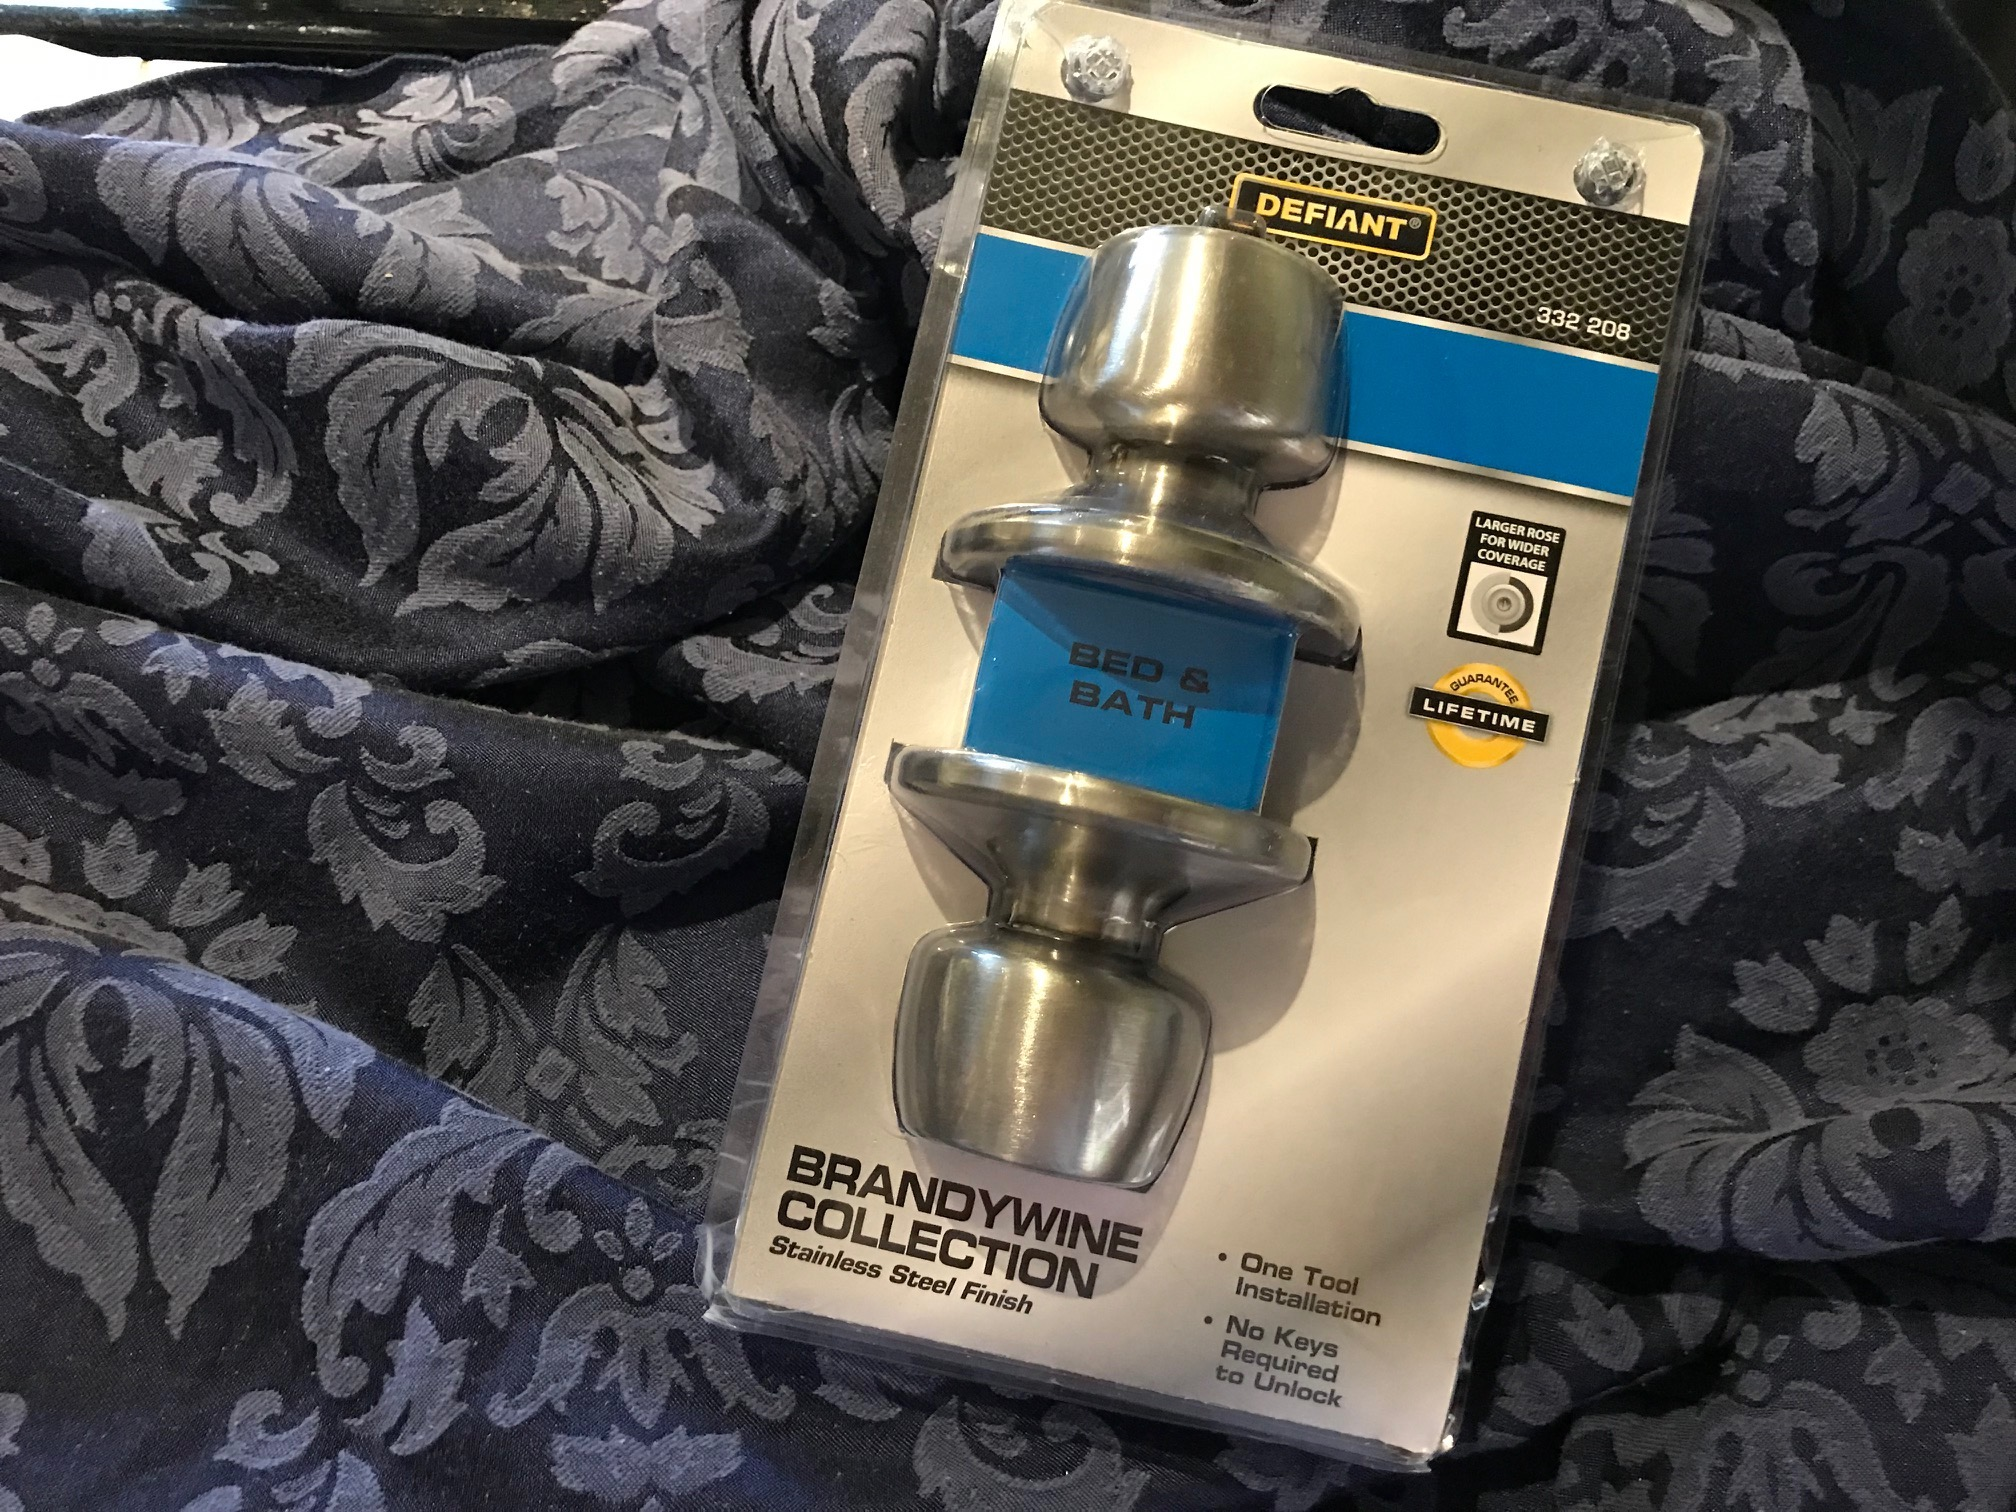 Home Depot Defiant Brandywine Collection Stainless Steel Finish Bed & Bath Door Knob Set: Lead-free in all accessible components.